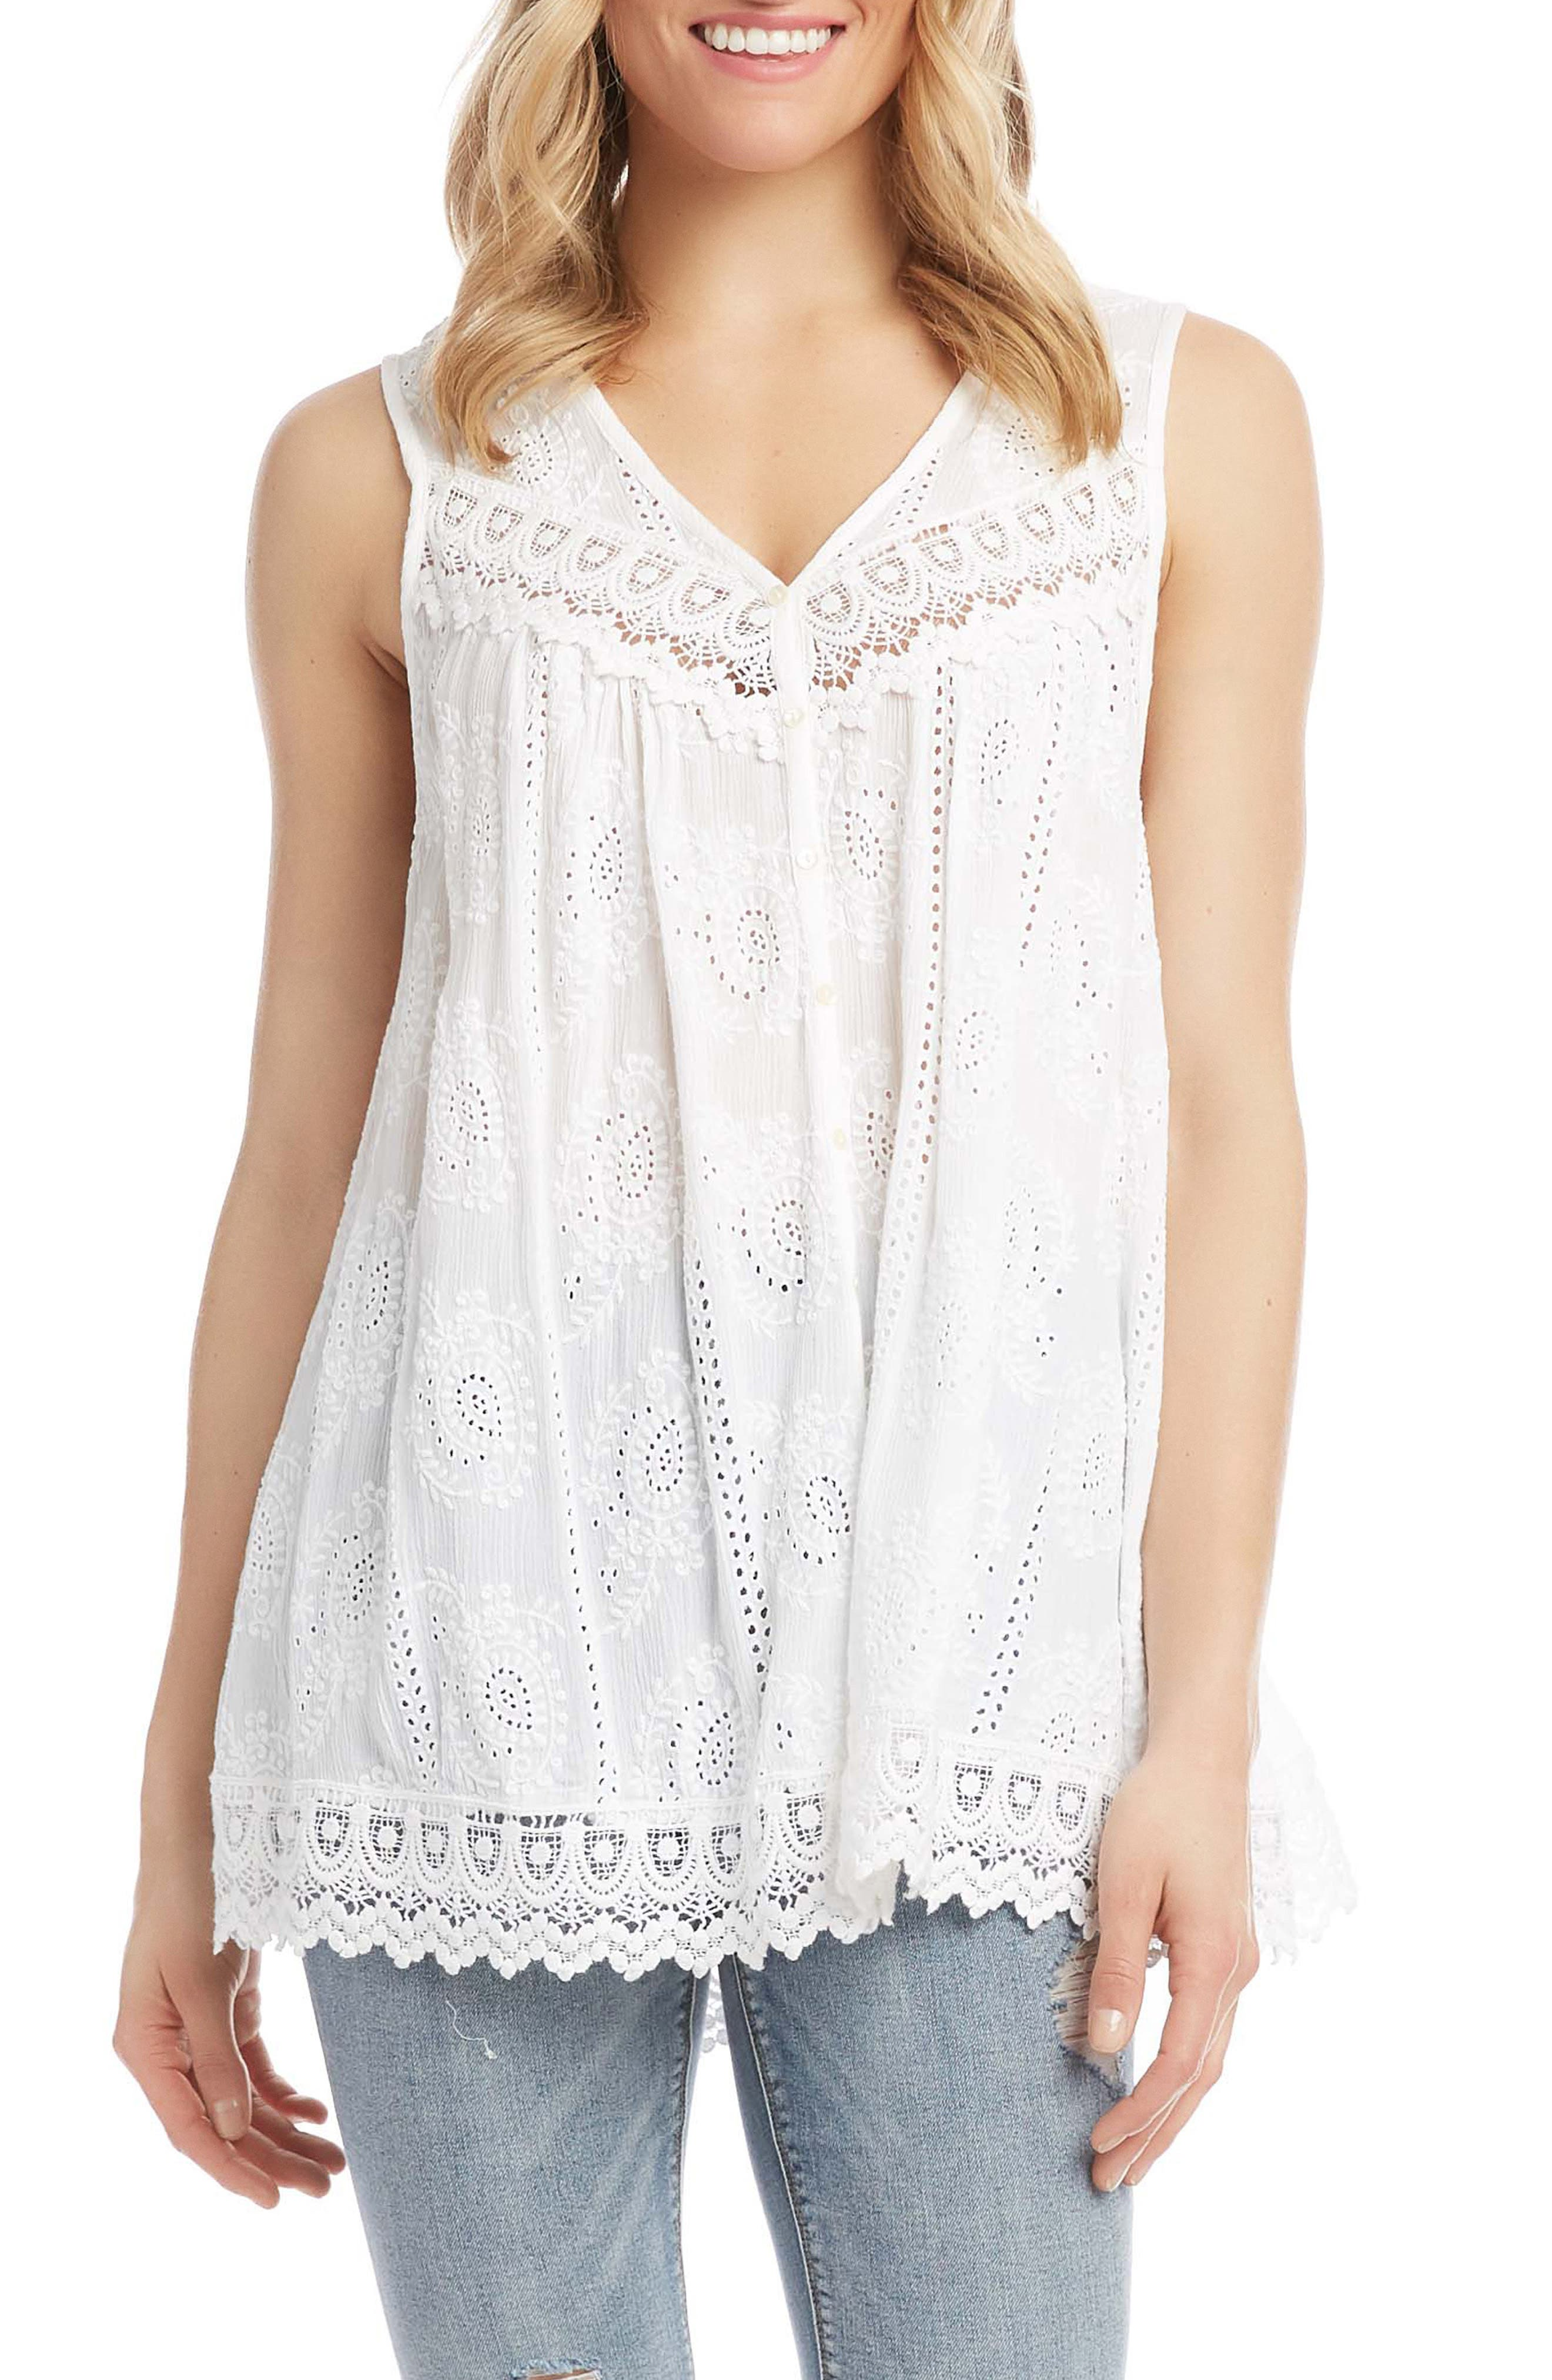 Eyelet & Lace Top